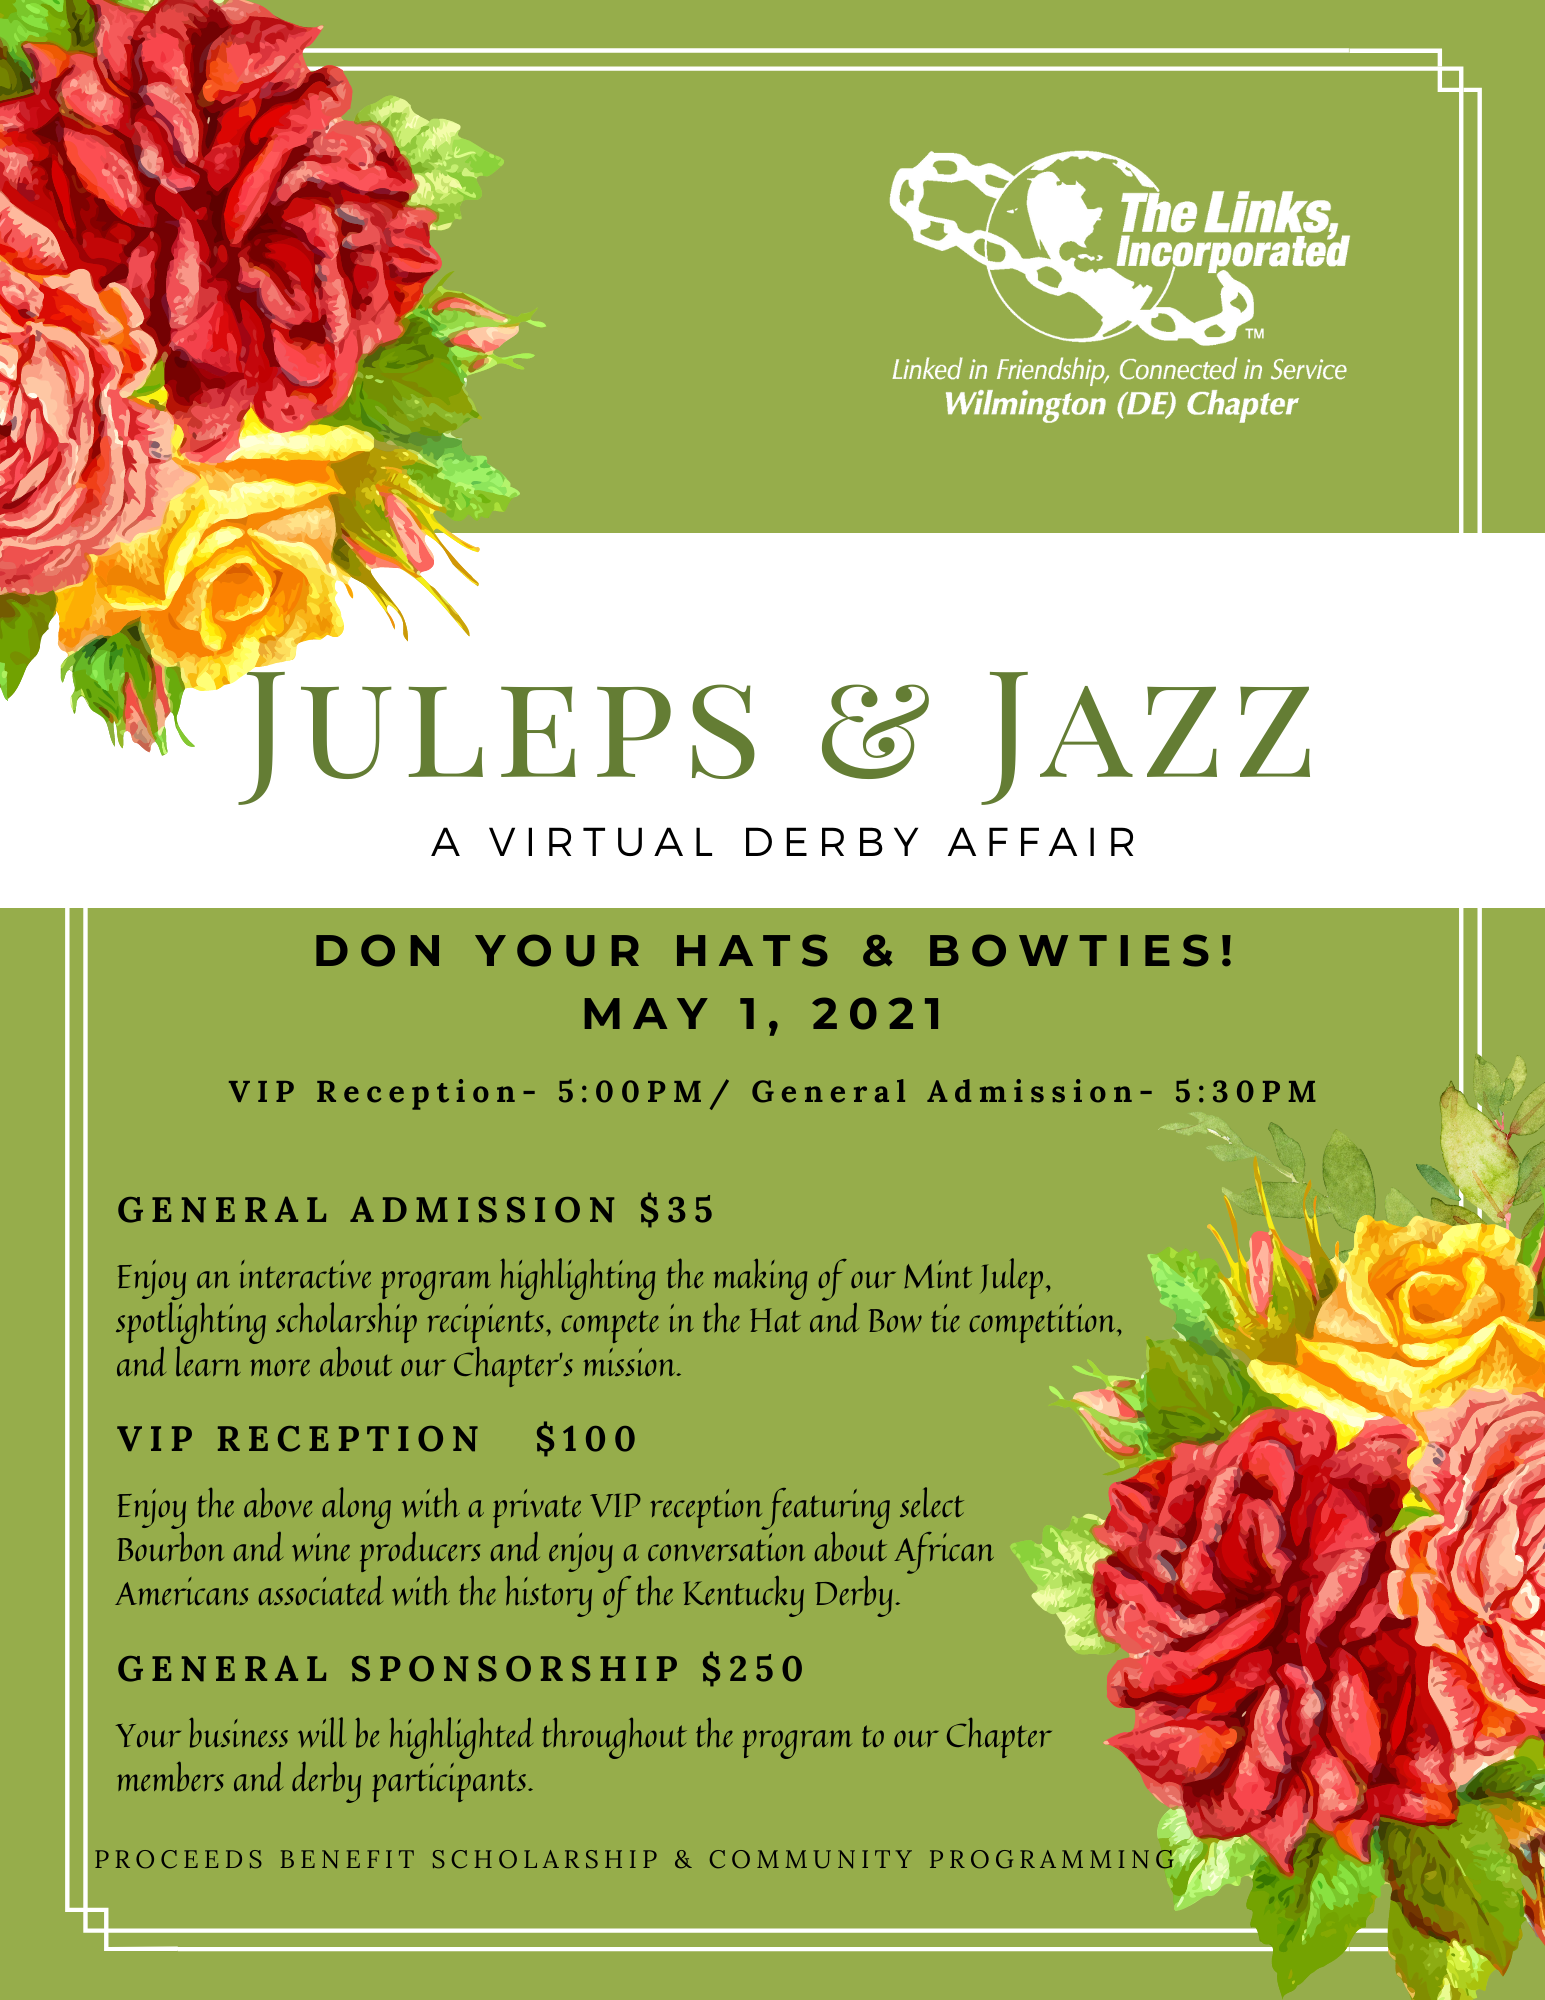 Juleps & Jazz - A Virtual Derby Affair 2021